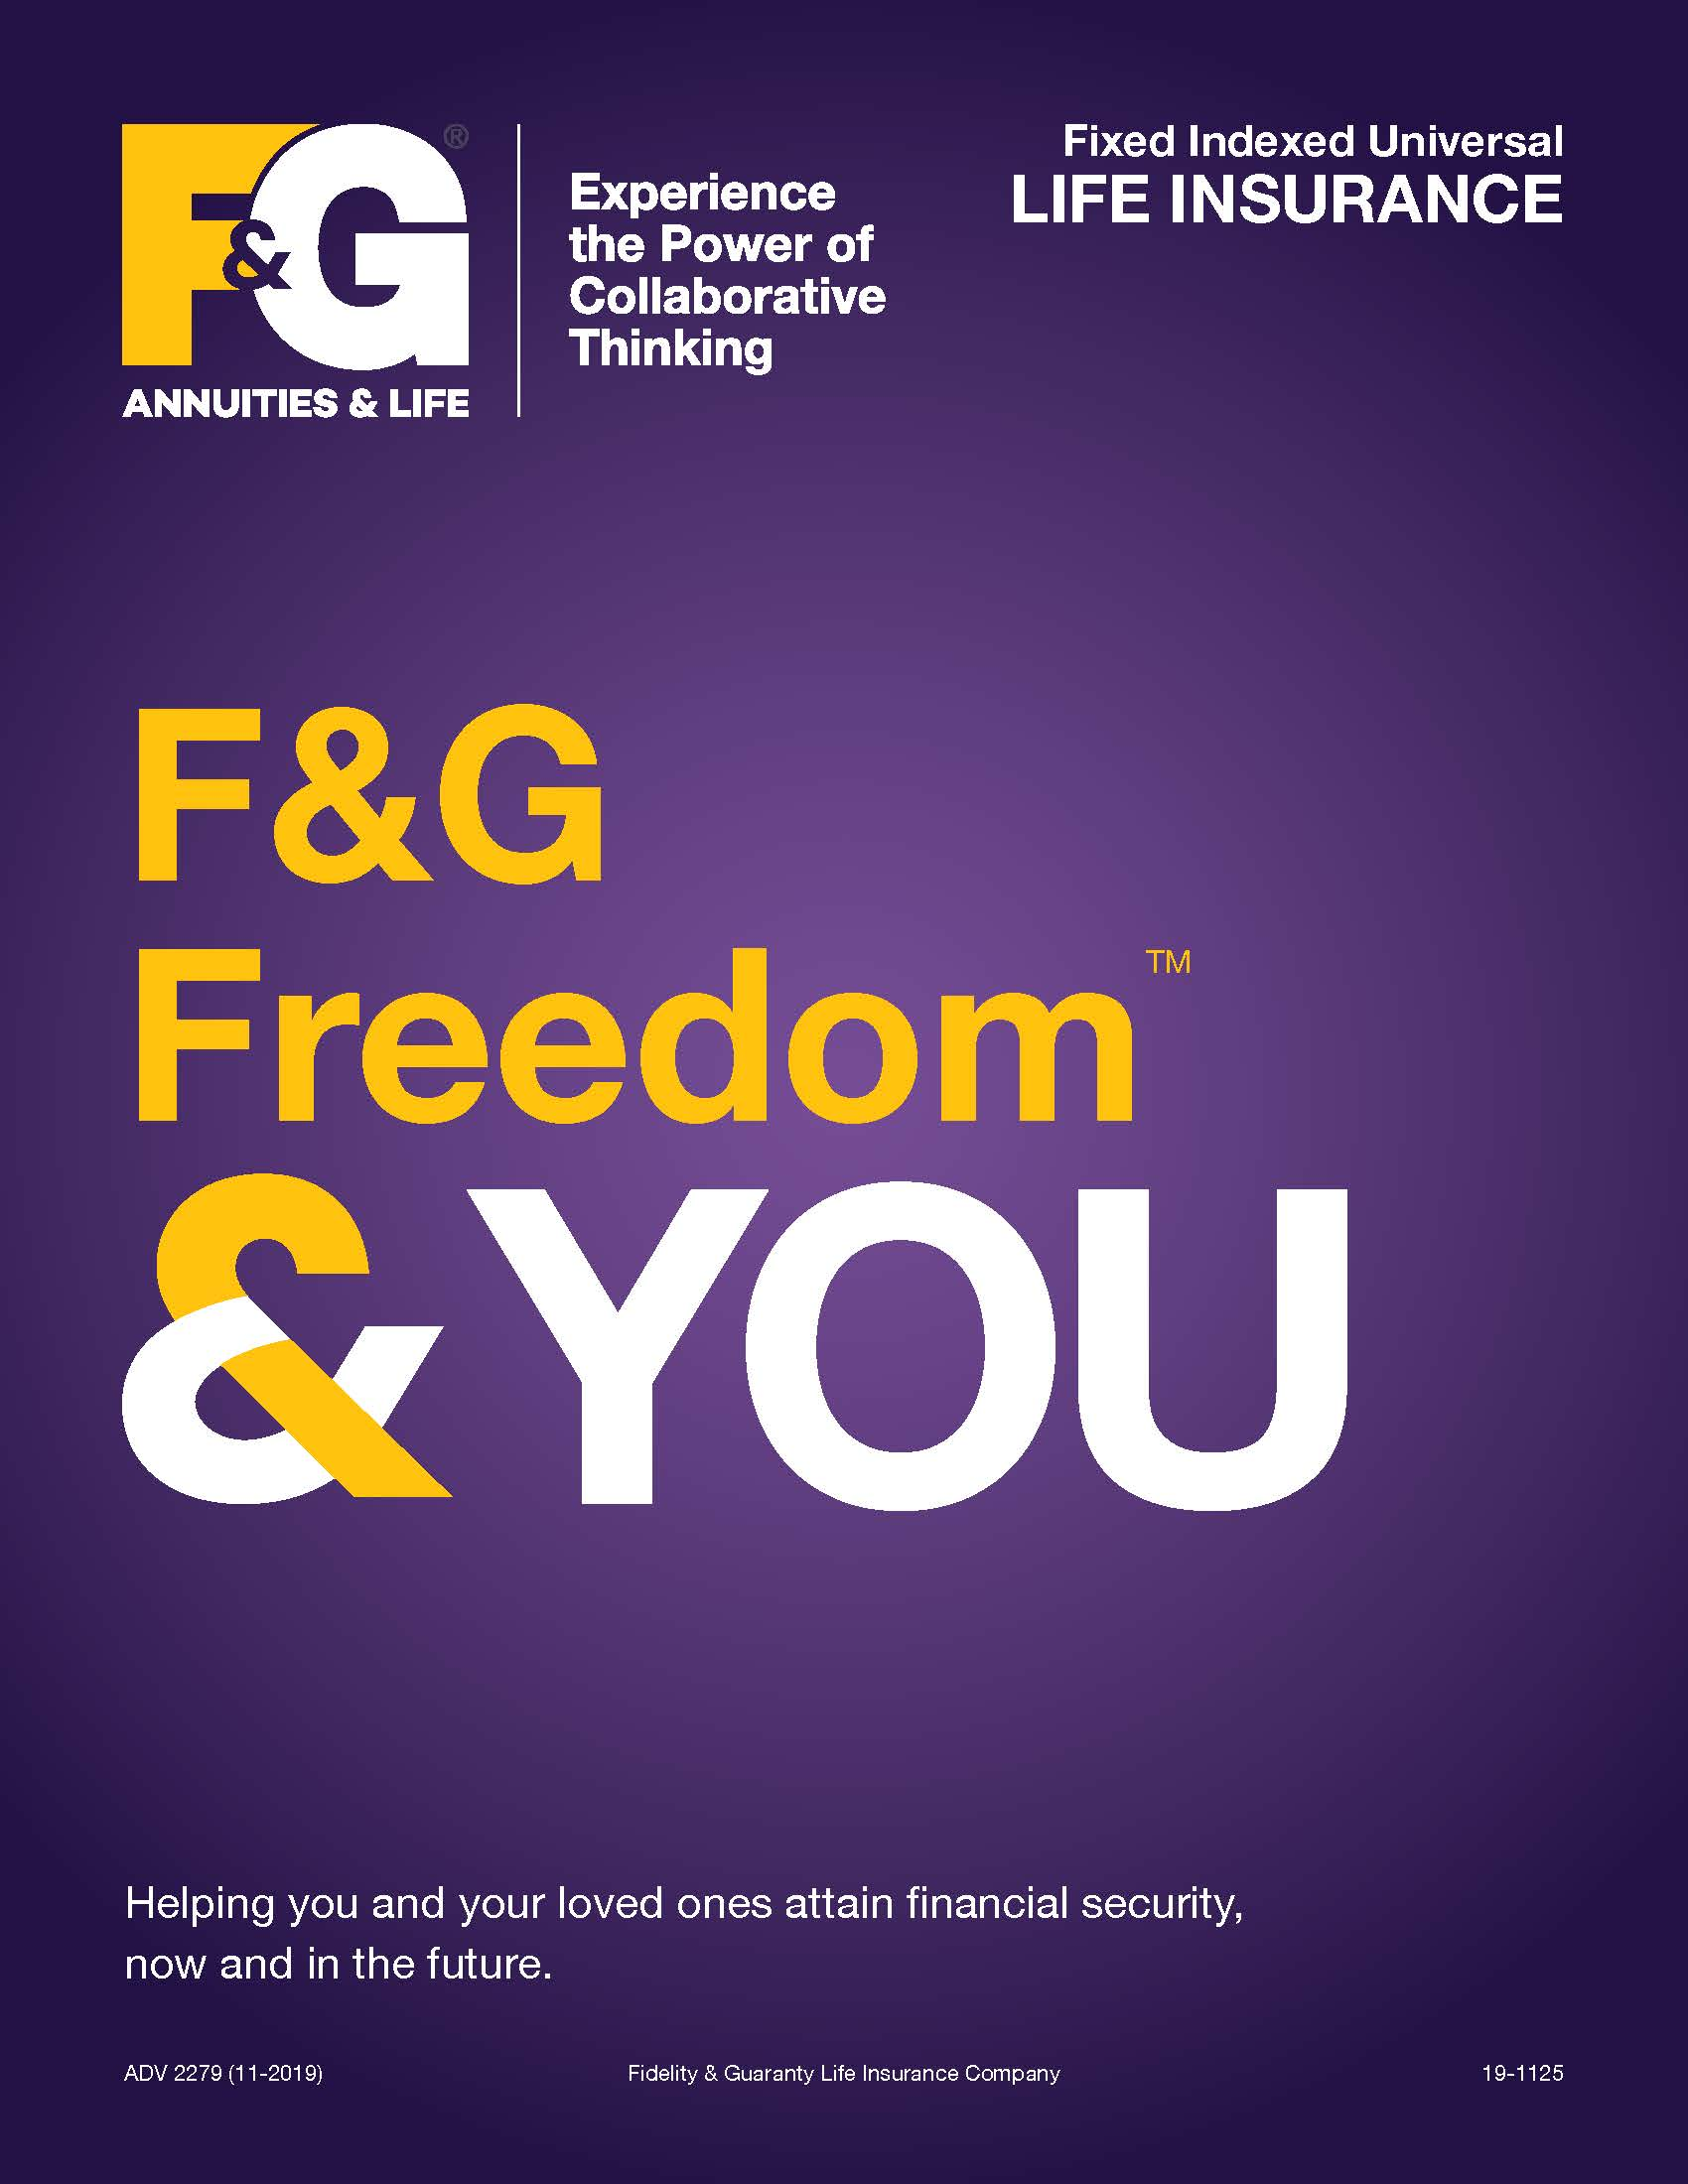 Doing Business with F&G